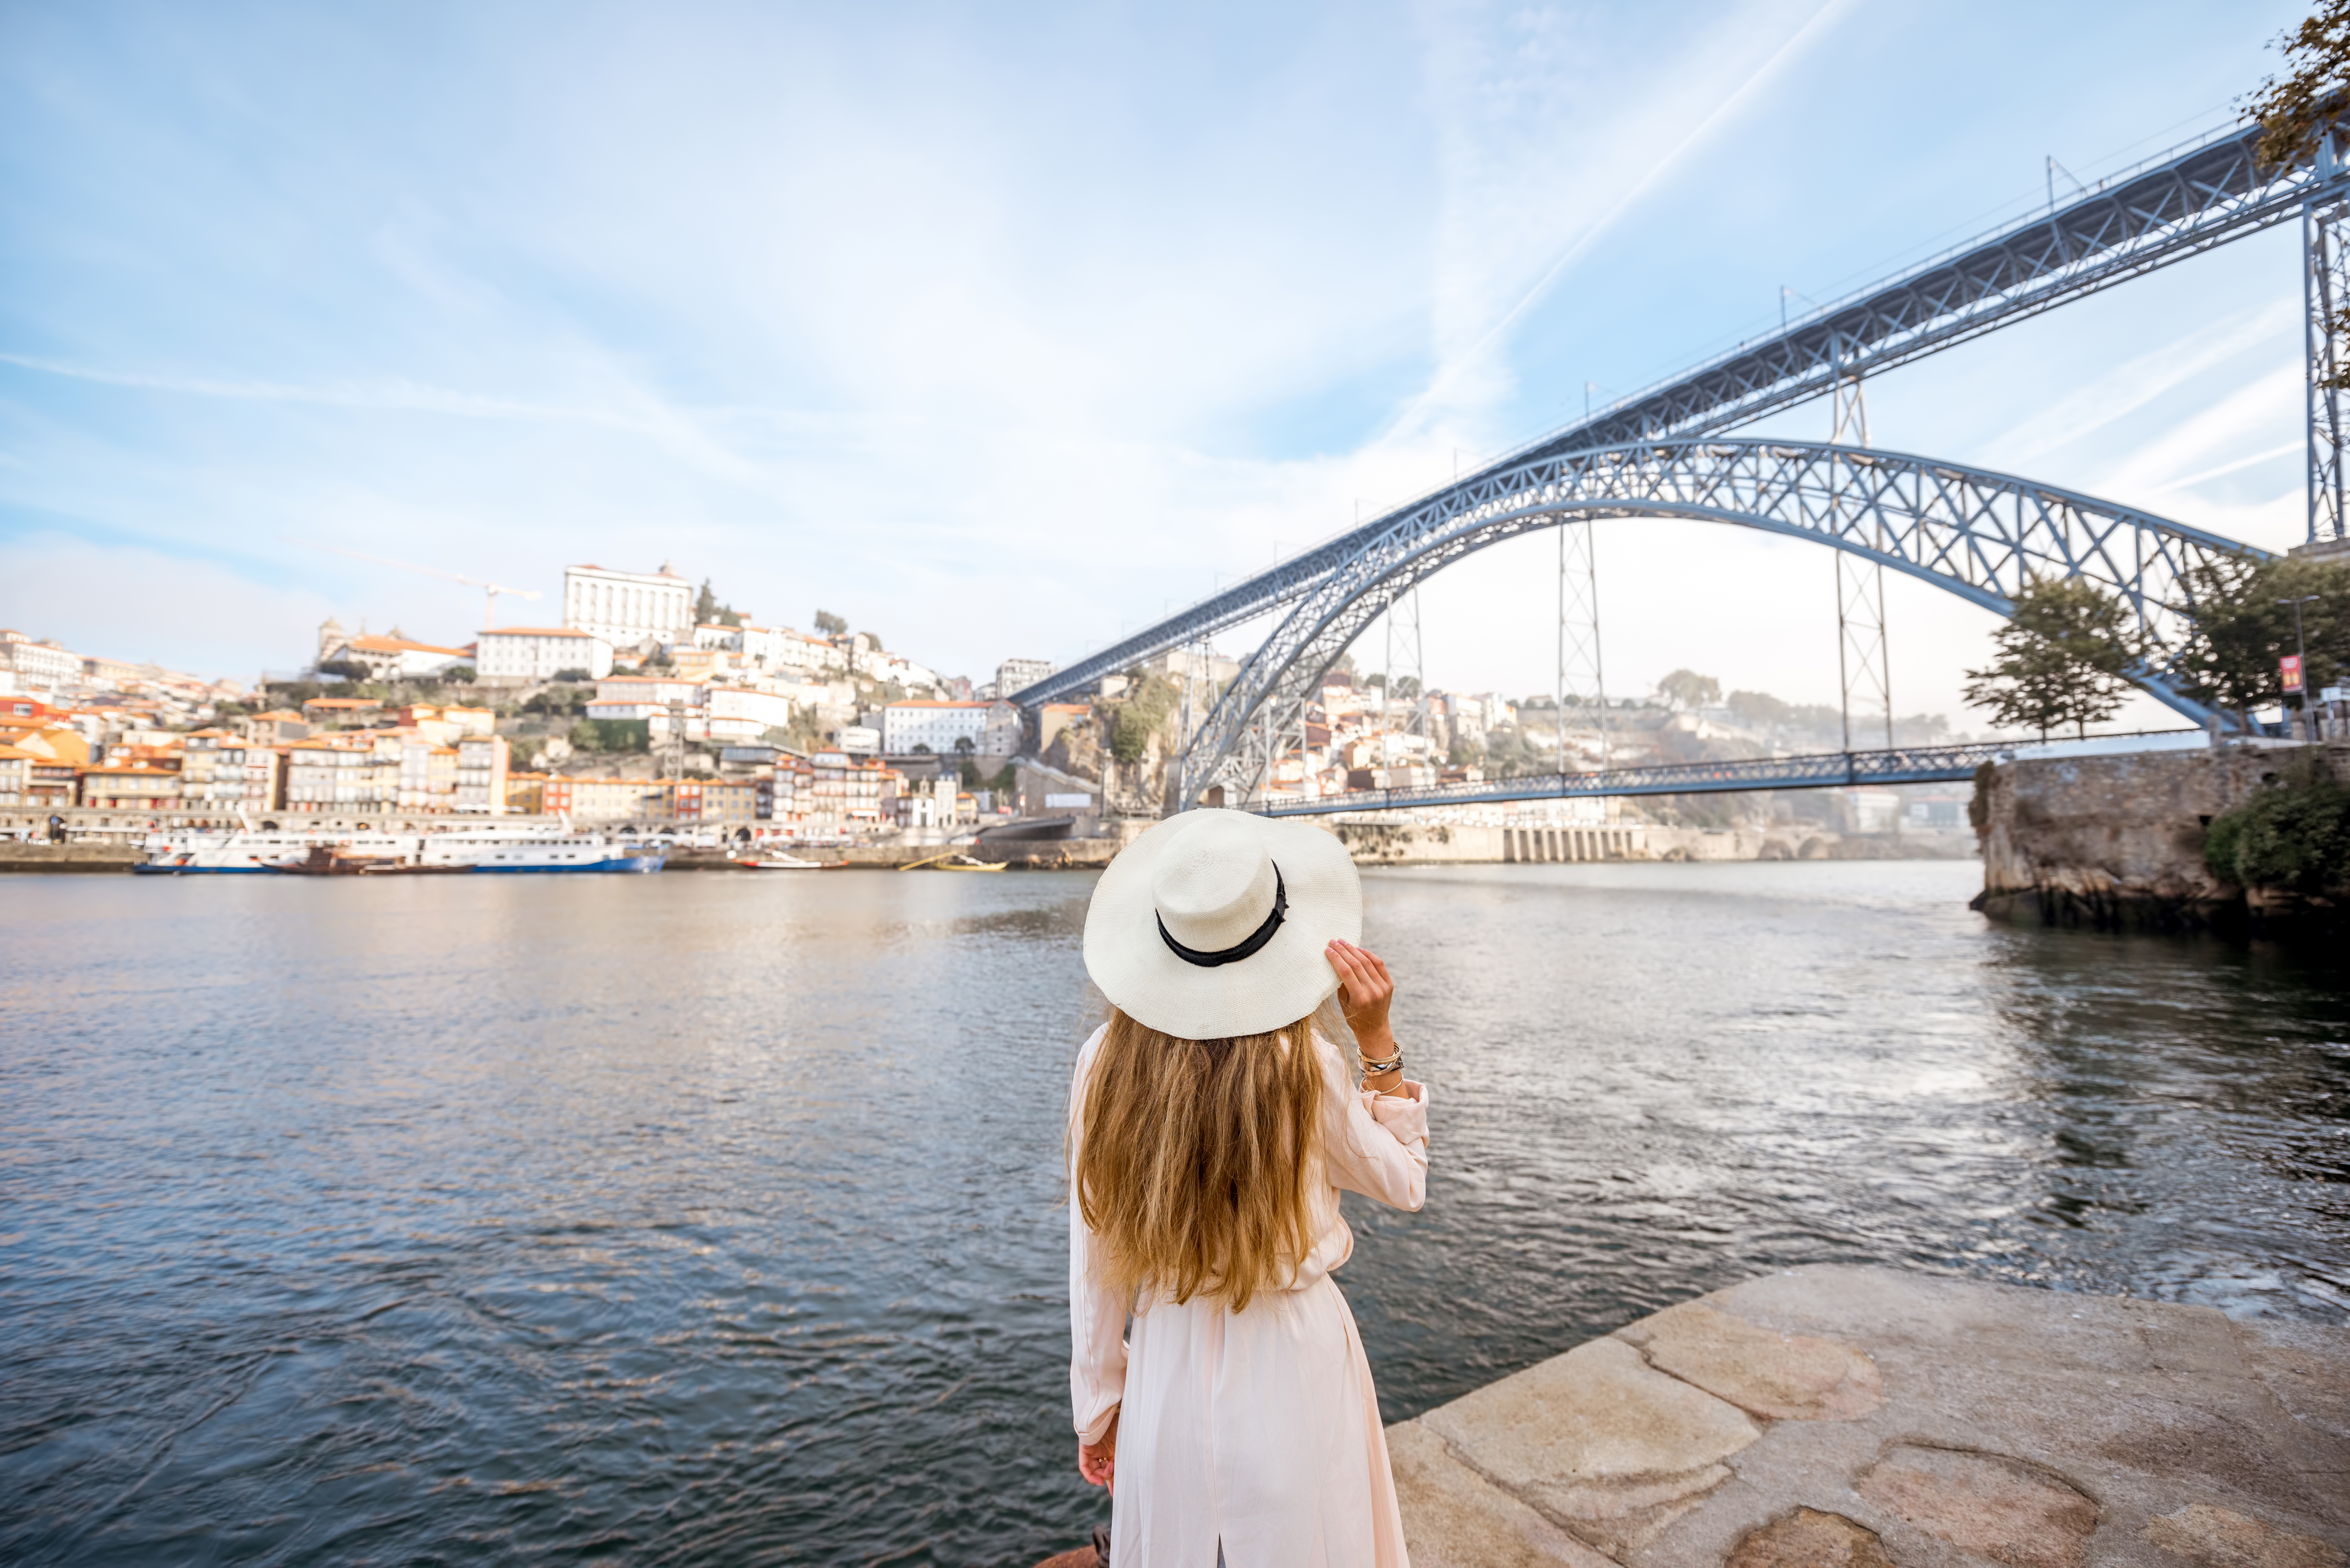 Historical center of the city of Porto in Northern Portugal.